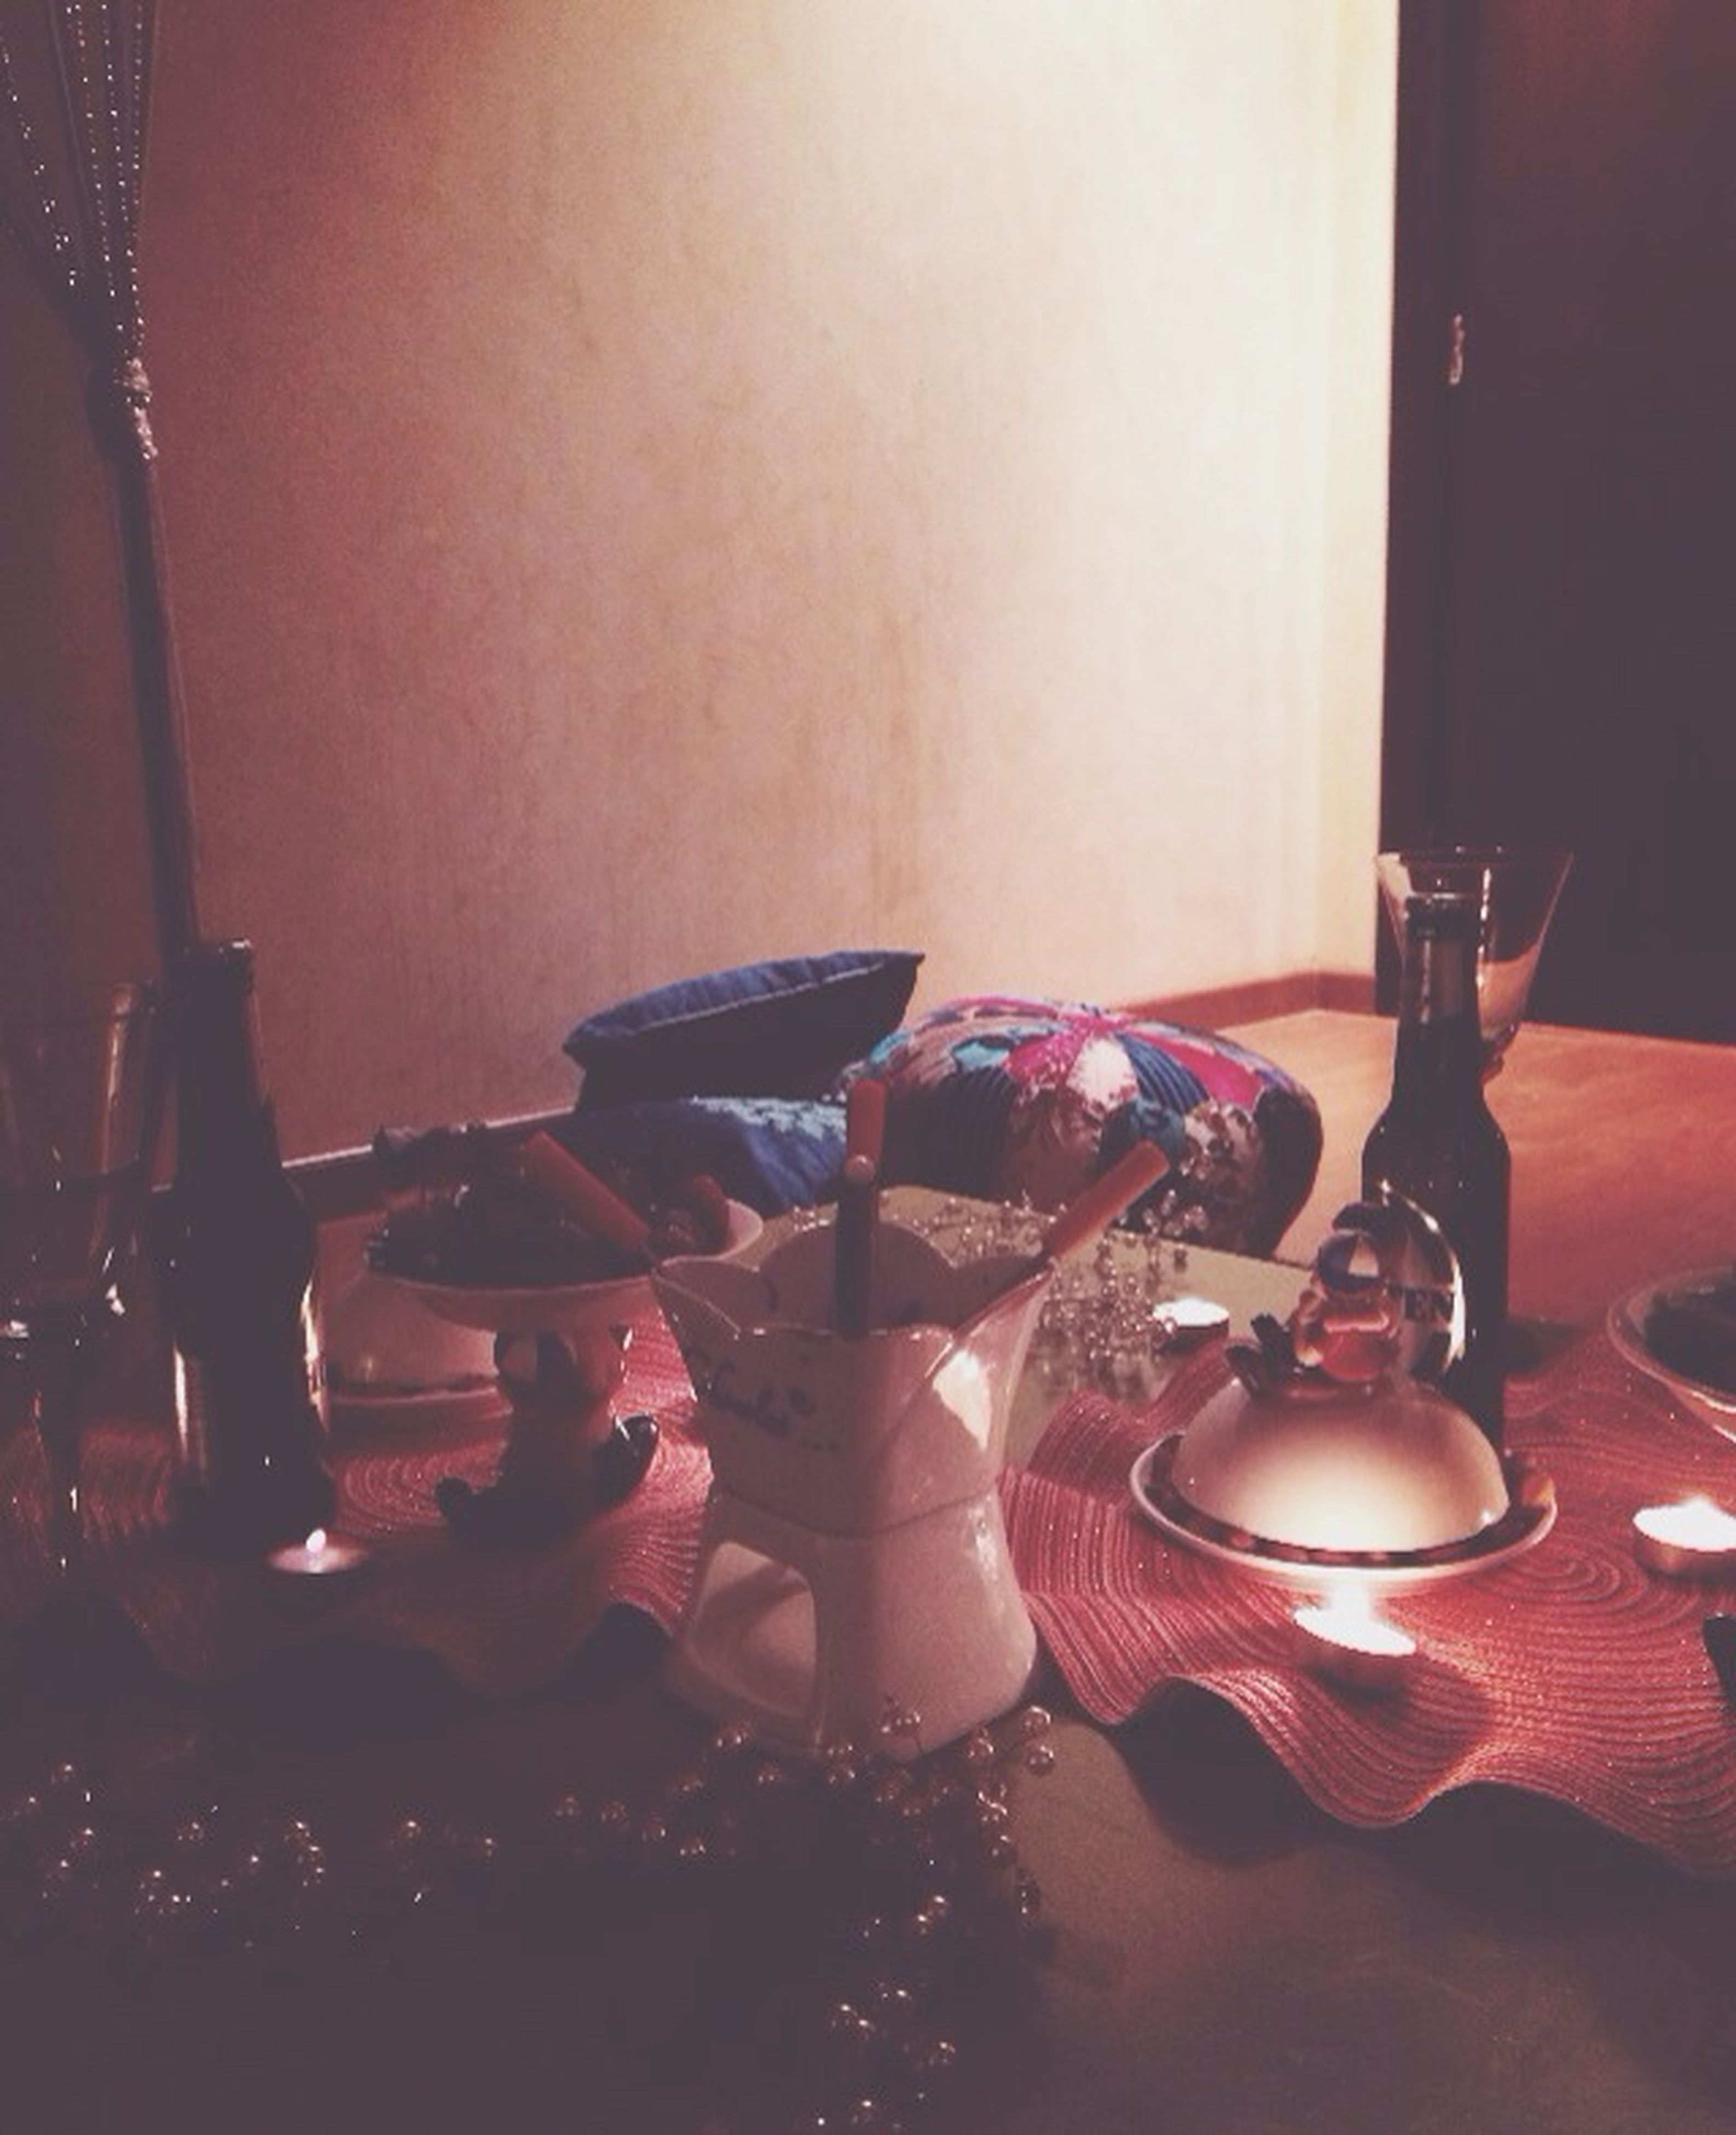 indoors, table, home interior, wineglass, chair, restaurant, illuminated, still life, candle, drinking glass, glass - material, food and drink, absence, drink, lighting equipment, close-up, wine, celebration, dining table, curtain